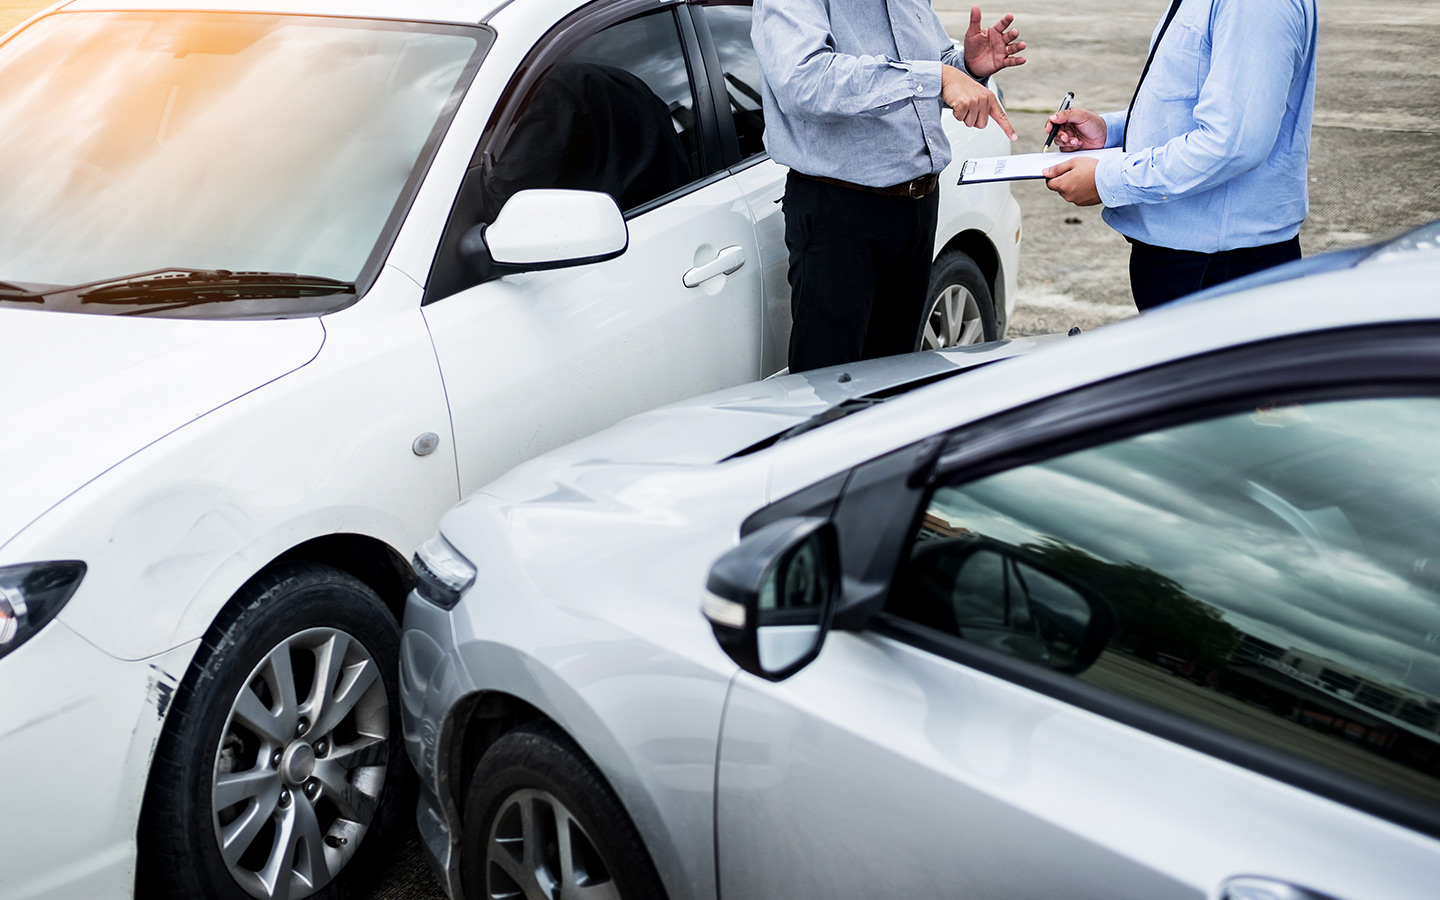 Two people standing by cars in an accident